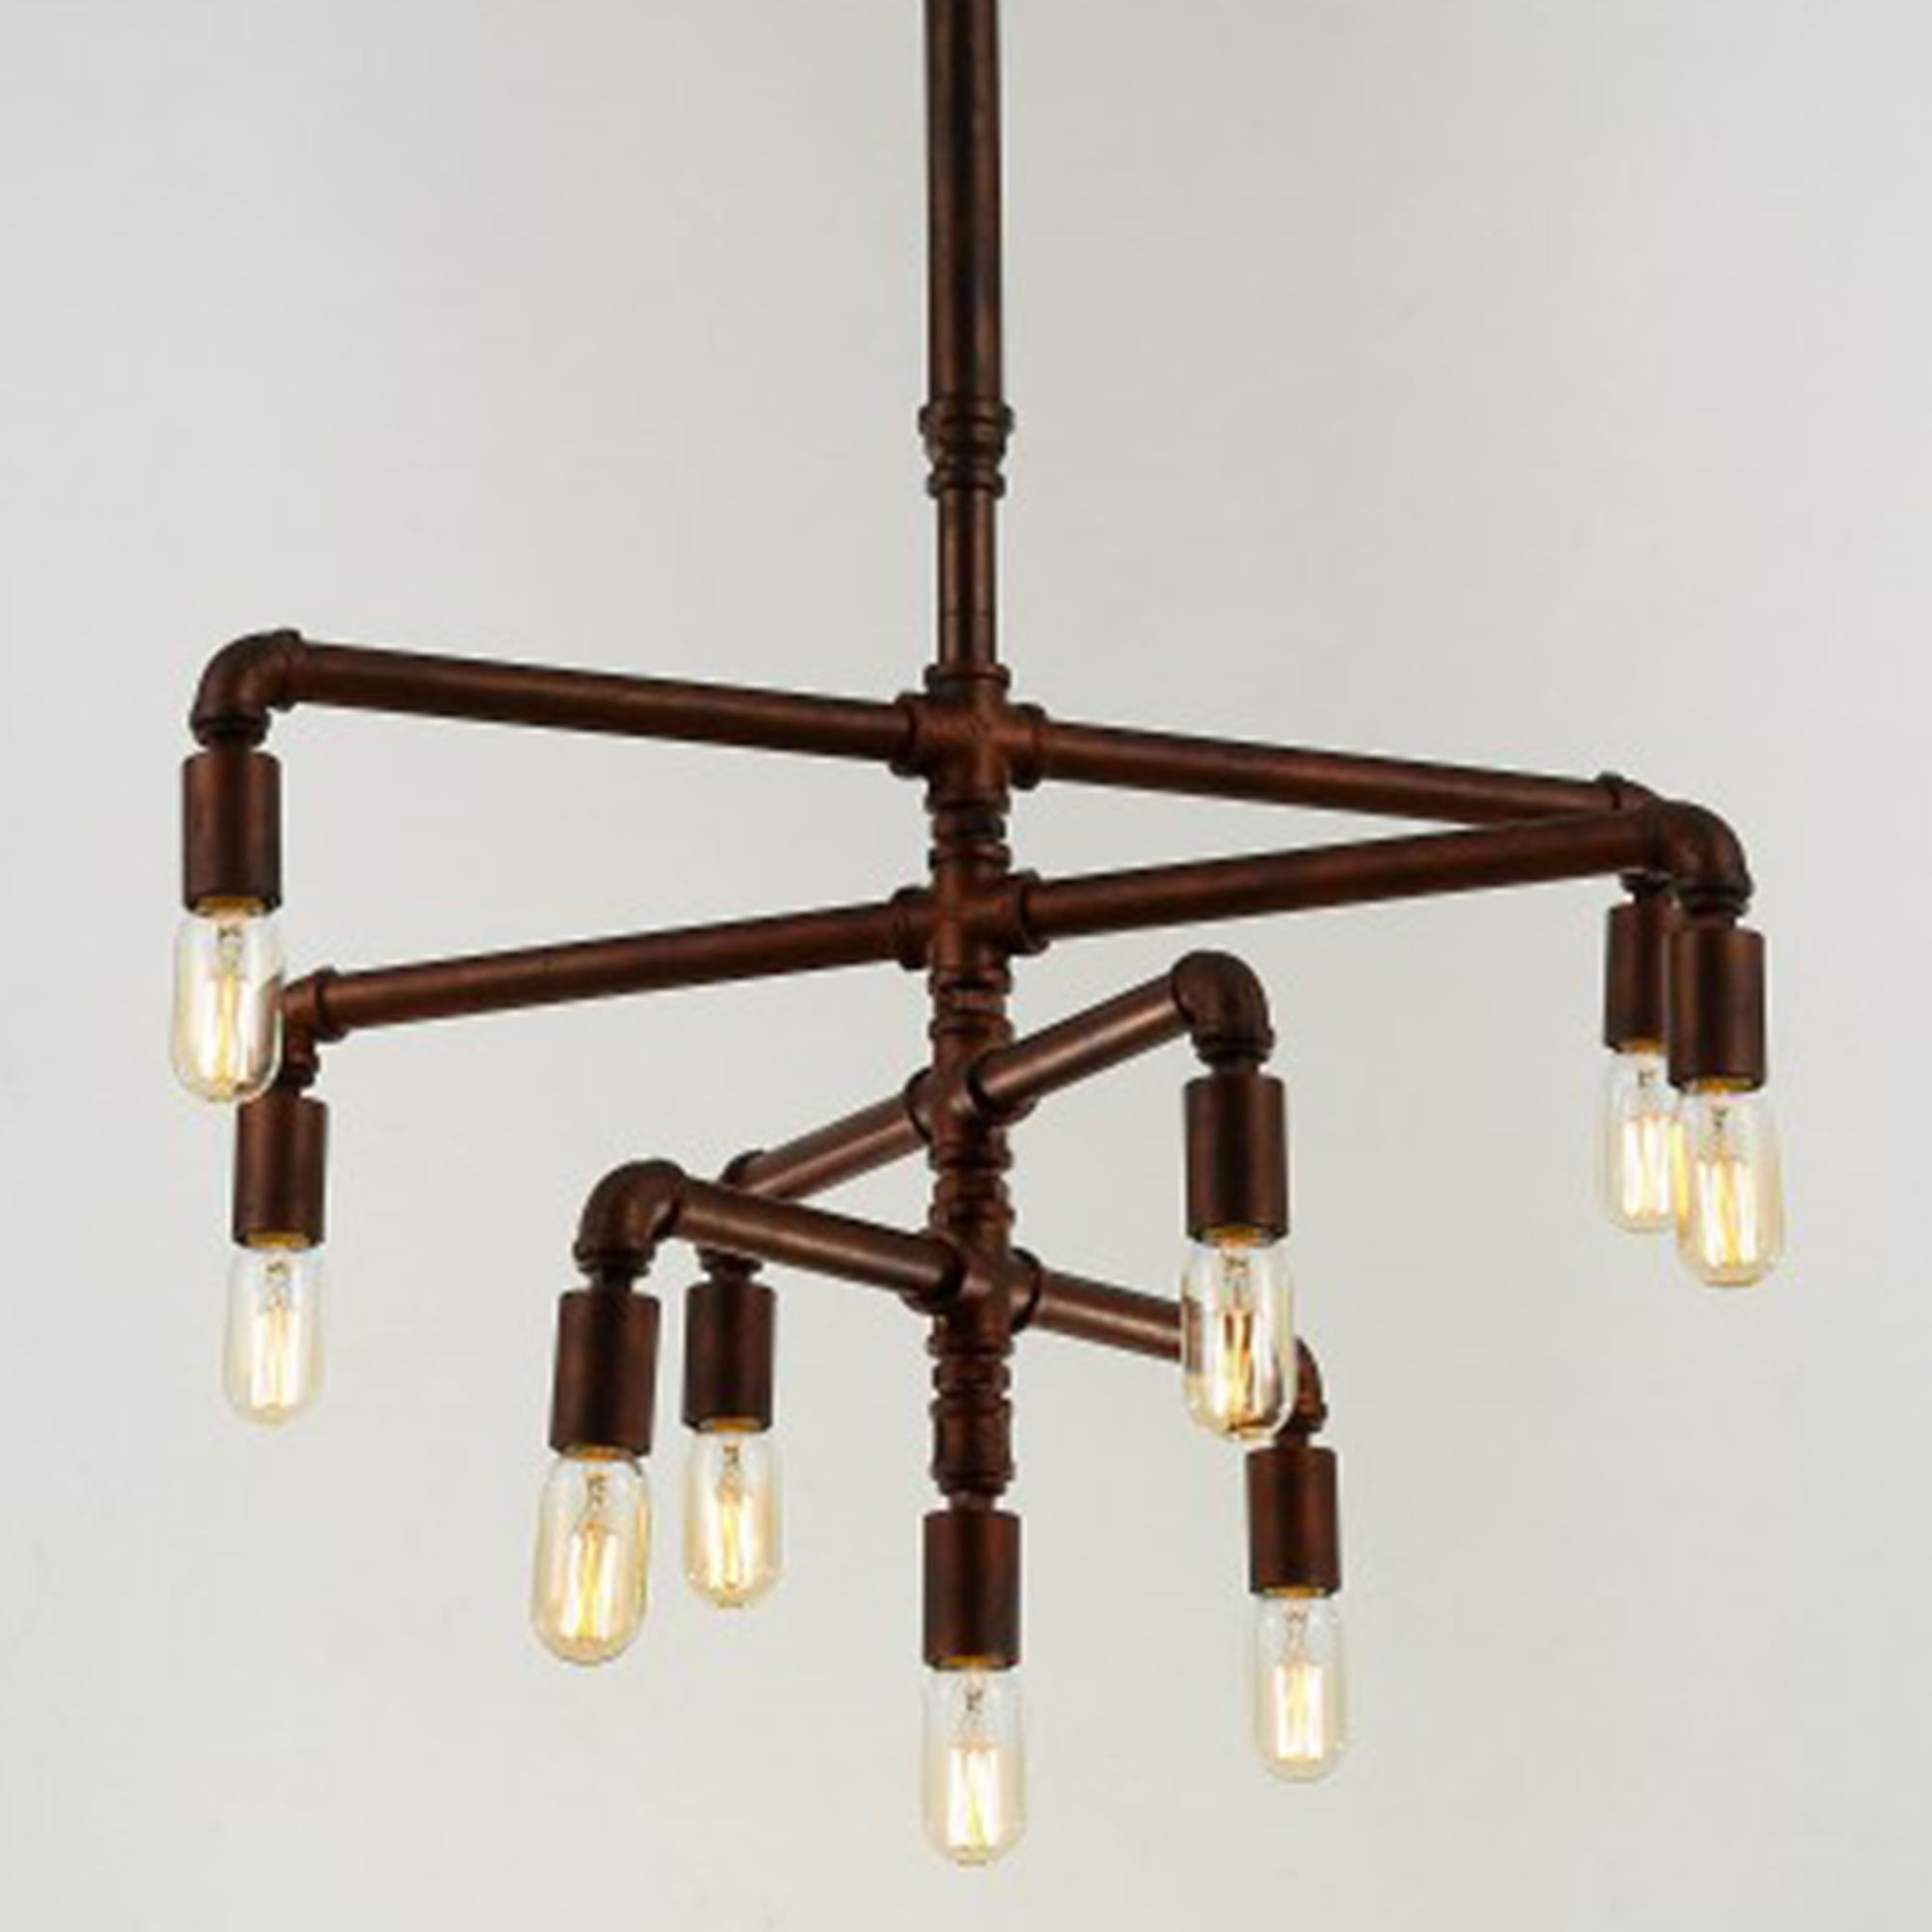 9 heads Vintage Industrial Pipes pendant  Lamp  CY-DD-188 -  مصباح معلق من 9 رؤوس - Shop Online Furniture and Home Decor Store in Dubai, UAE at ebarza